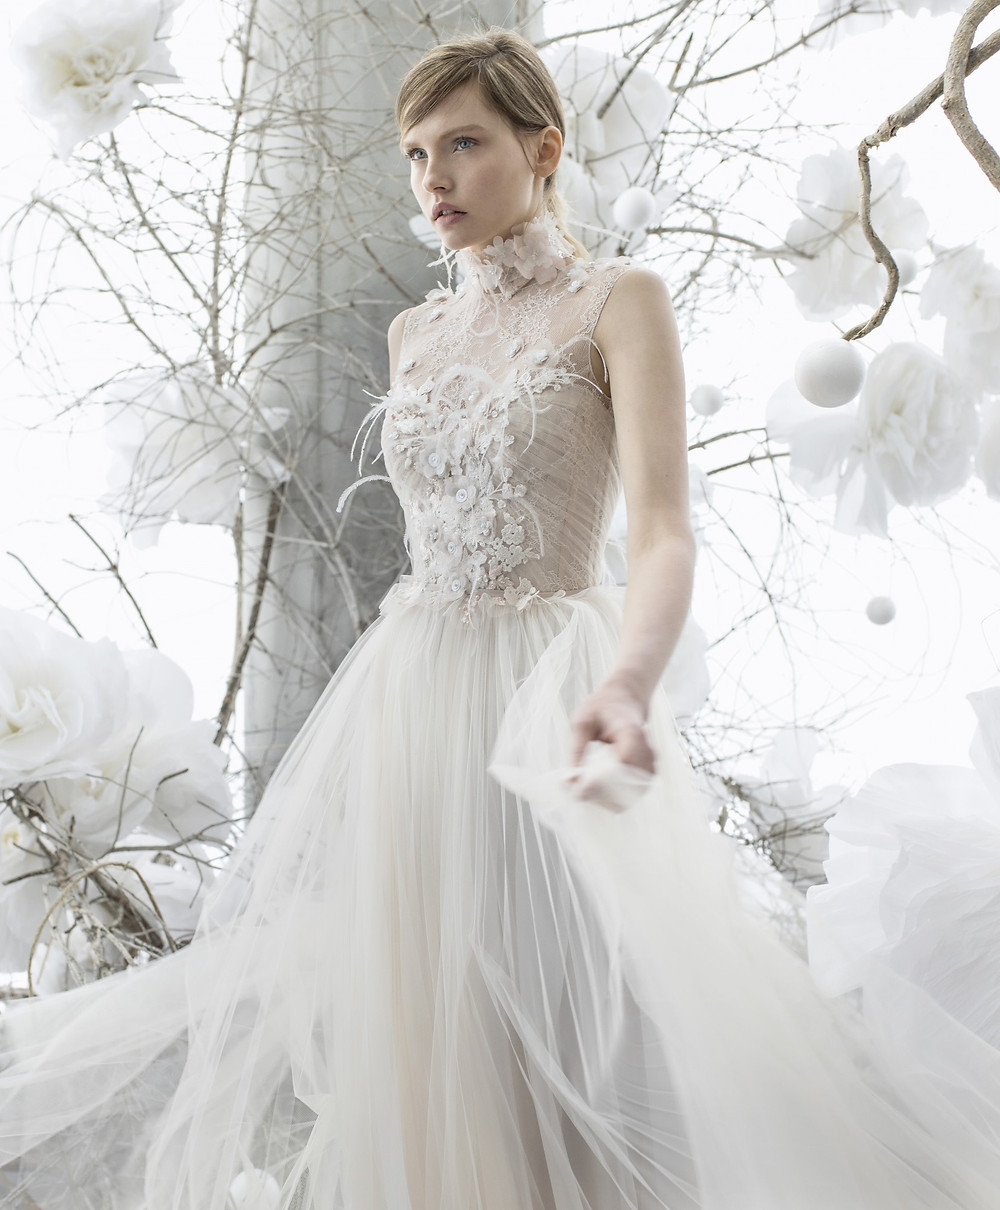 A Mira Zwillinger mesh, chiffon and feathers A-line wedding dress